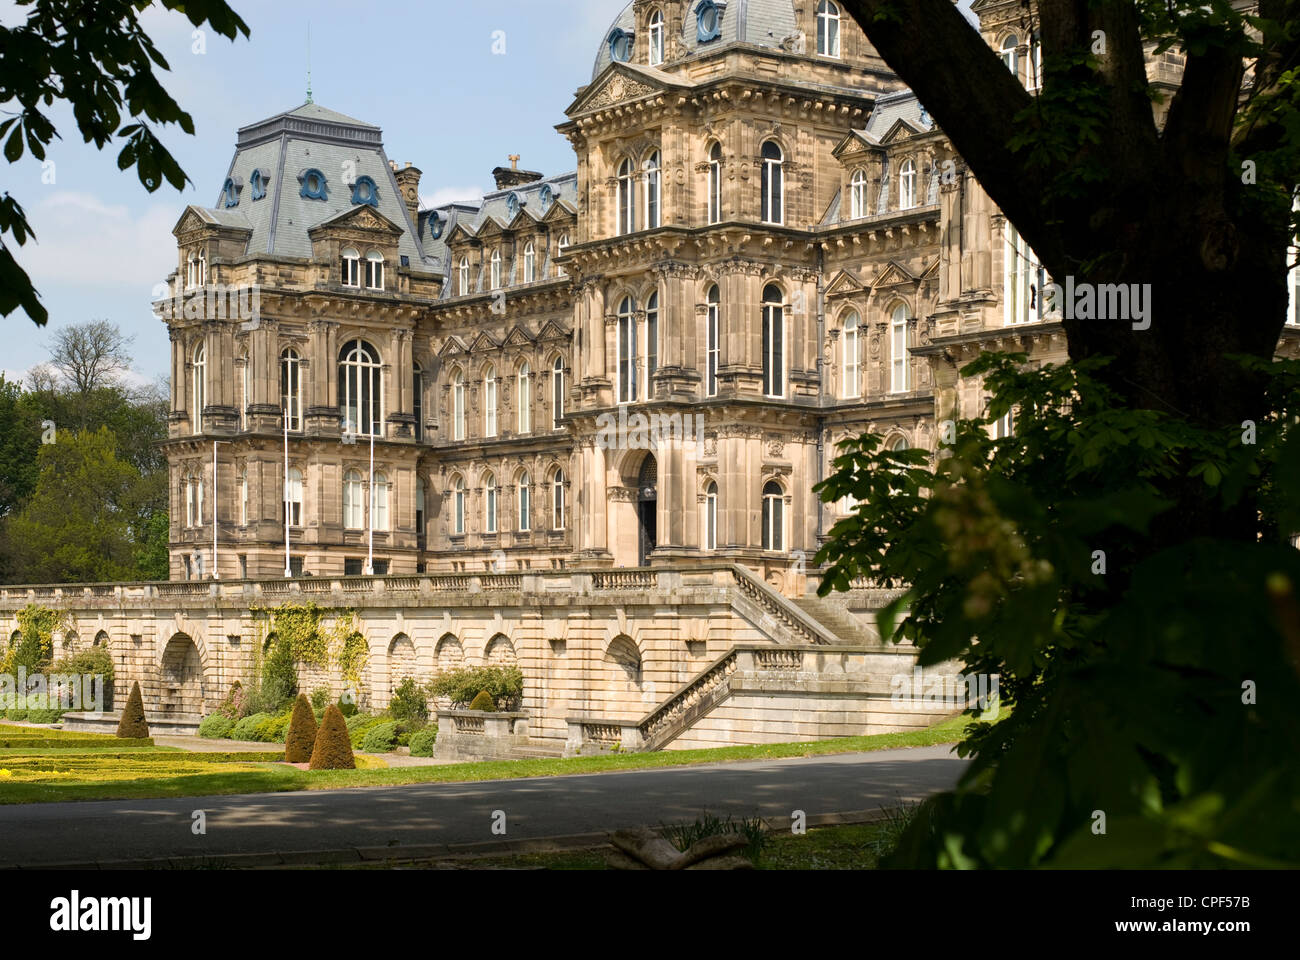 Front facade of Bowes Museum in Barnard Castle, County Durham - Stock Image